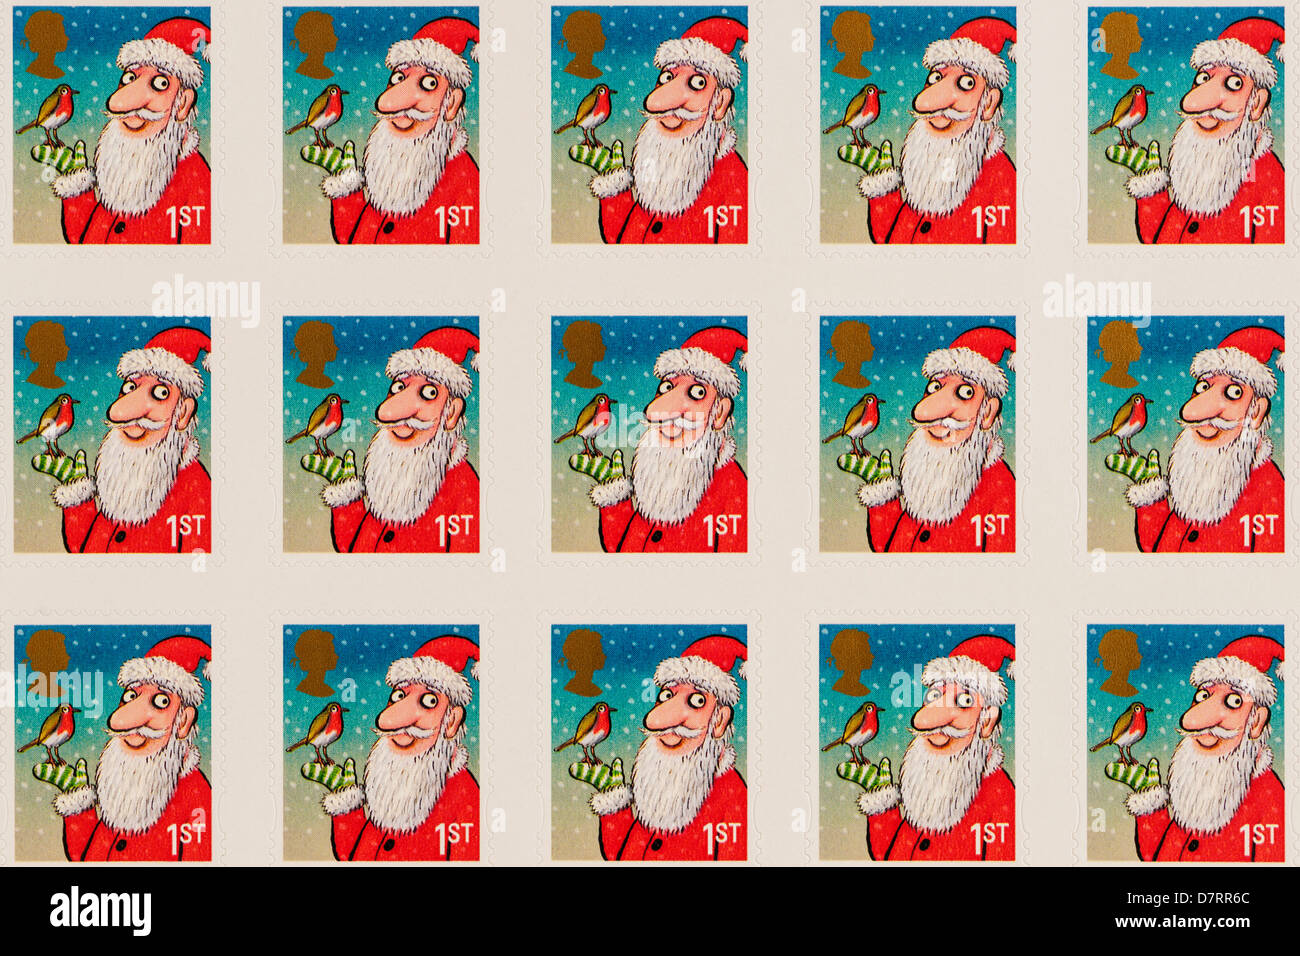 Festive Royal Mail christmas 1st class postage stamps - Stock Image